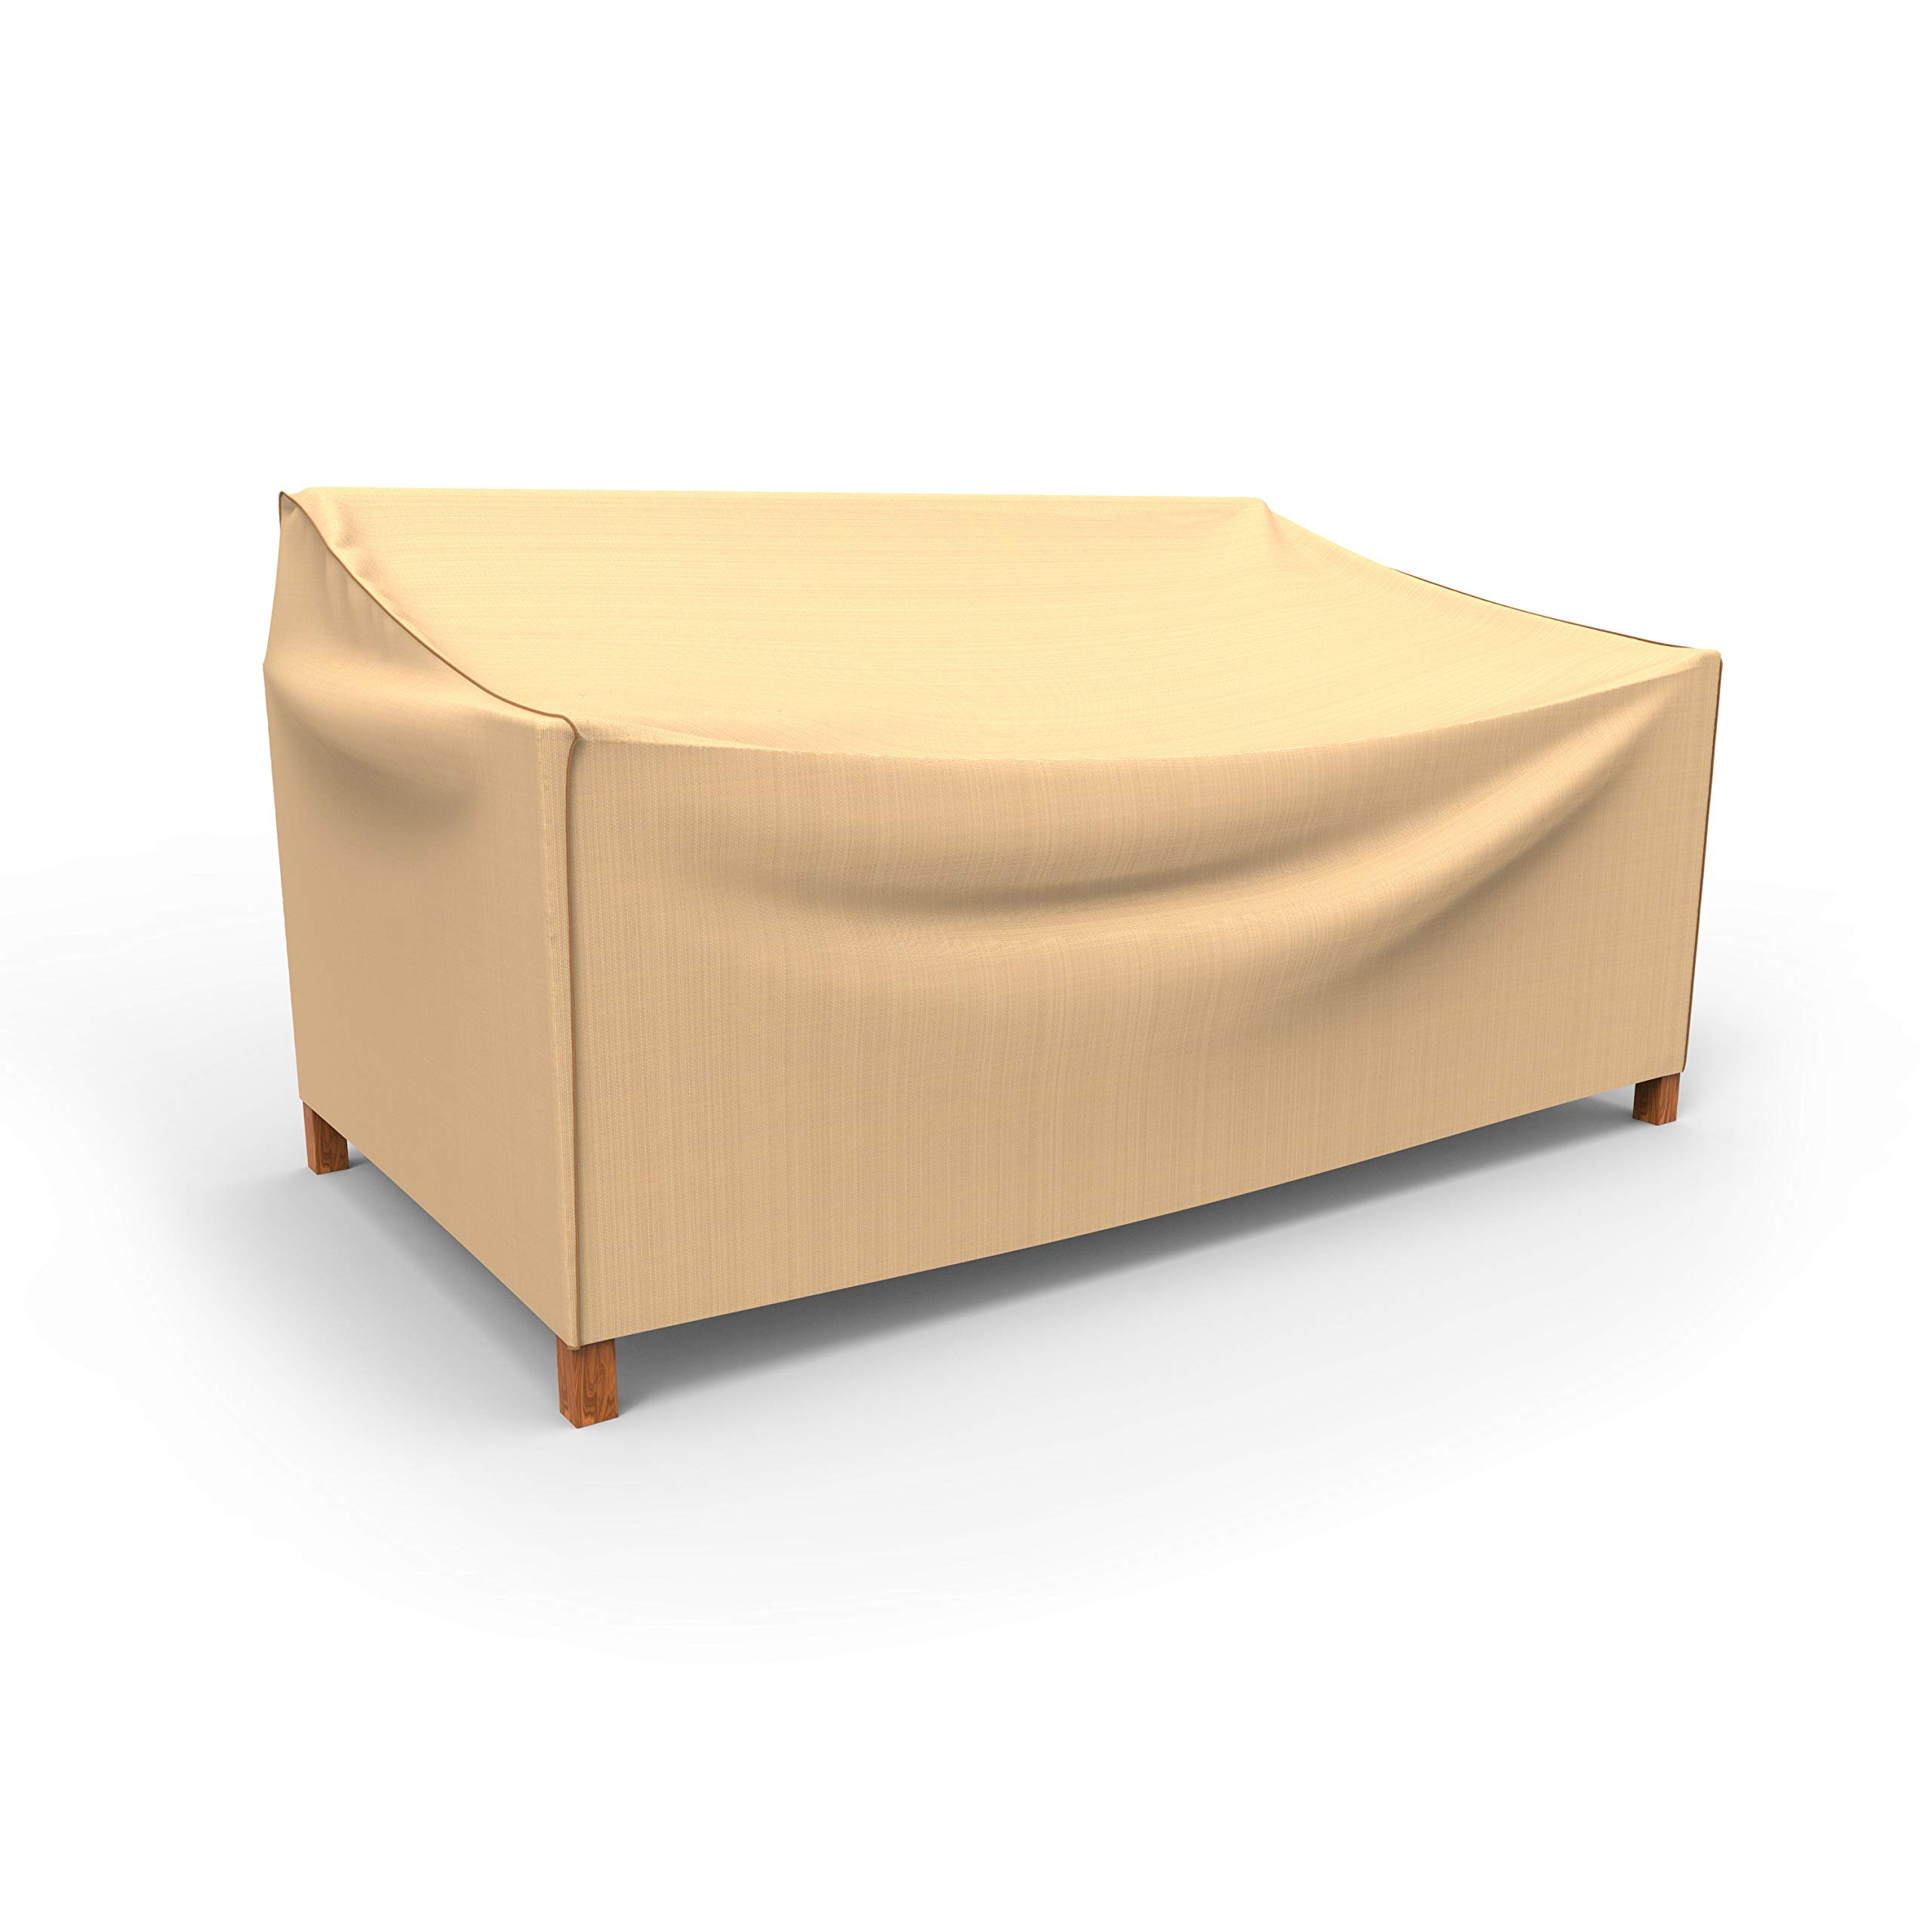 EmpireCovers NeverWet Signature Outdoor Patio Loveseat Cover, Large - Tan, P3W06TNNW2 by EmpireCovers